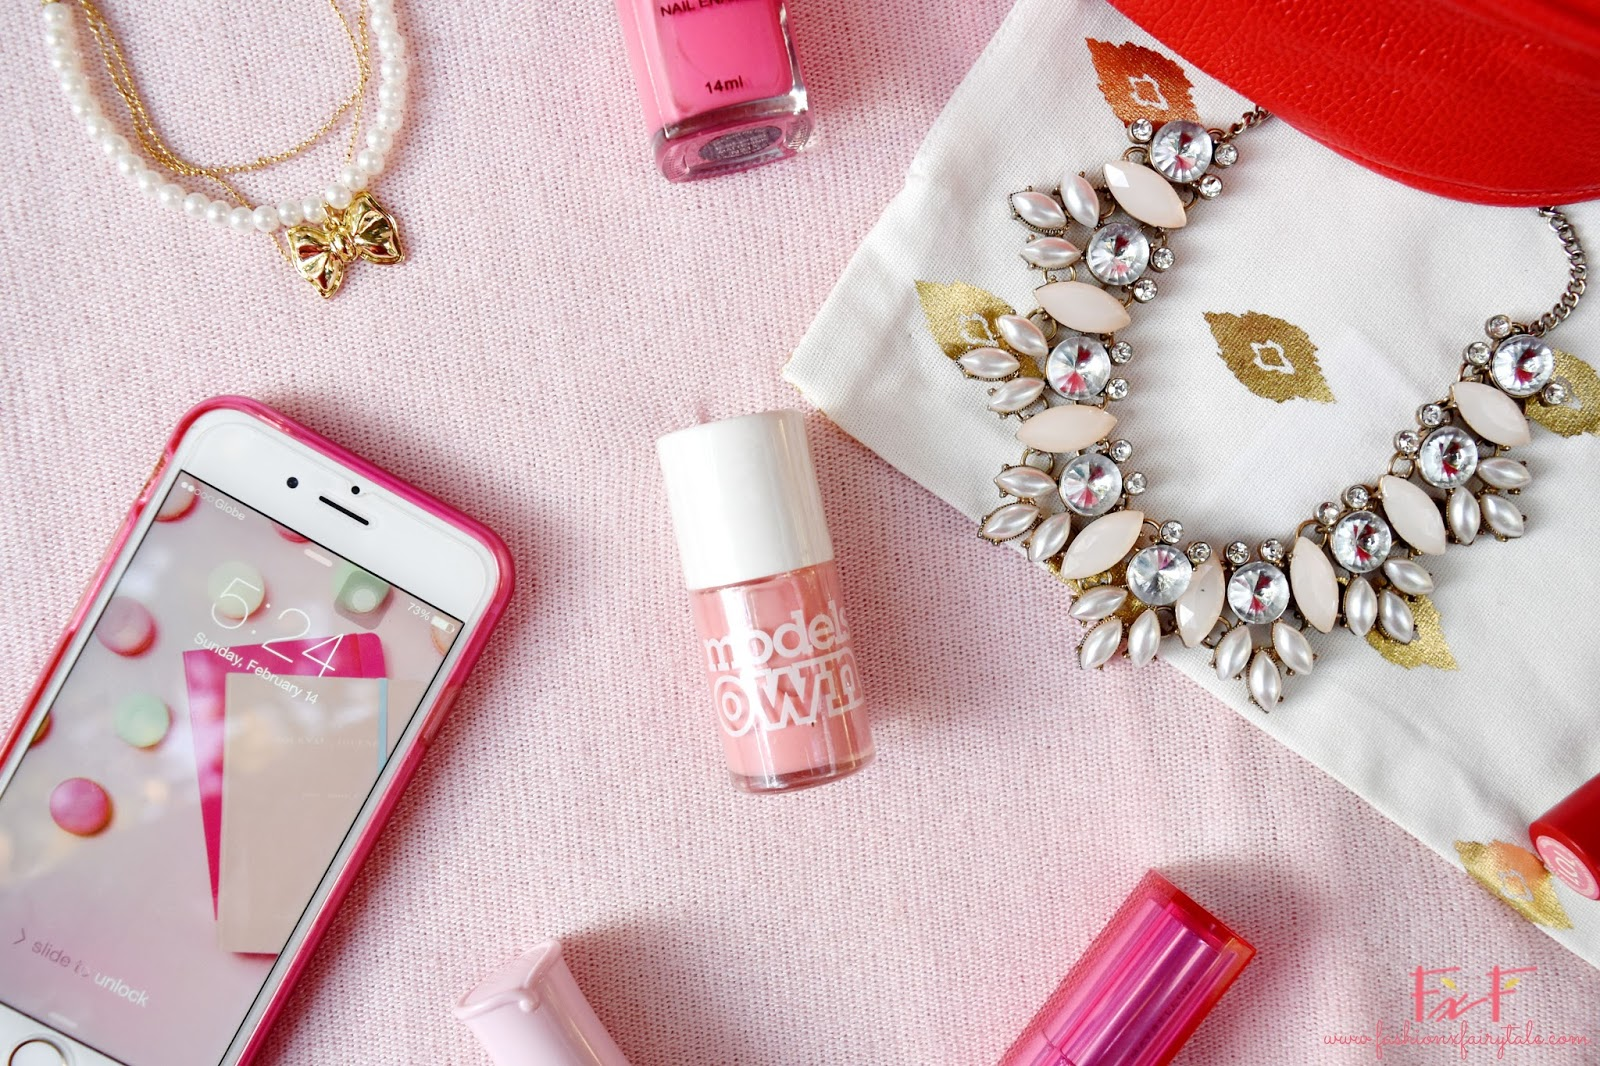 Models Own Soda Shop | On My Nails